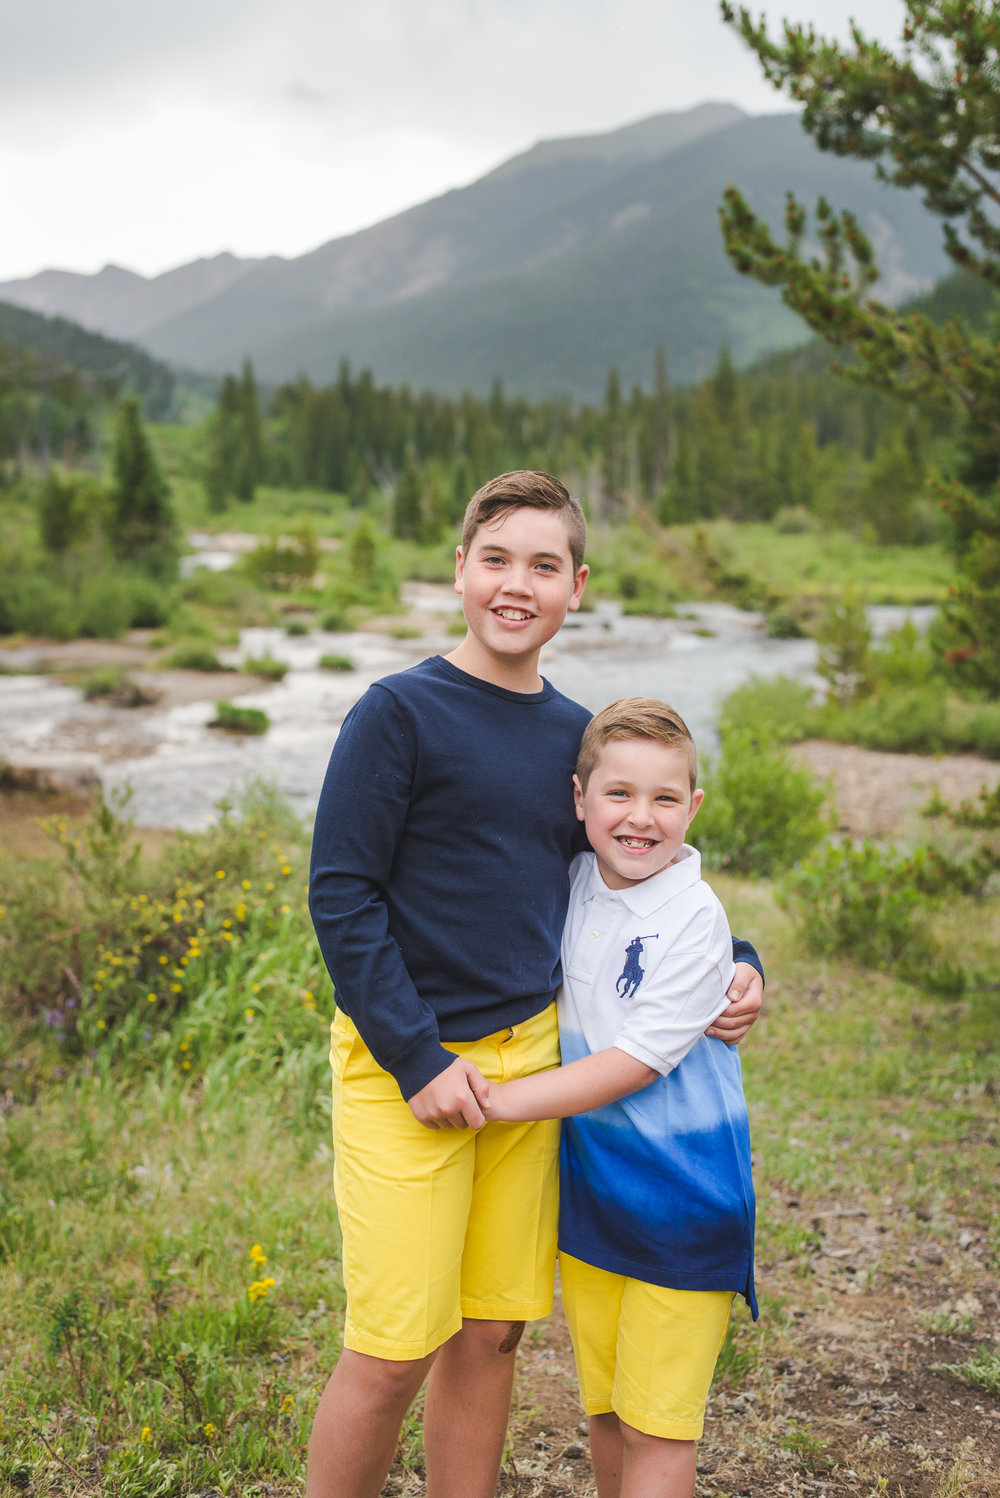 Keystone, Colorado summer family portraits | Keeping Composure Photography